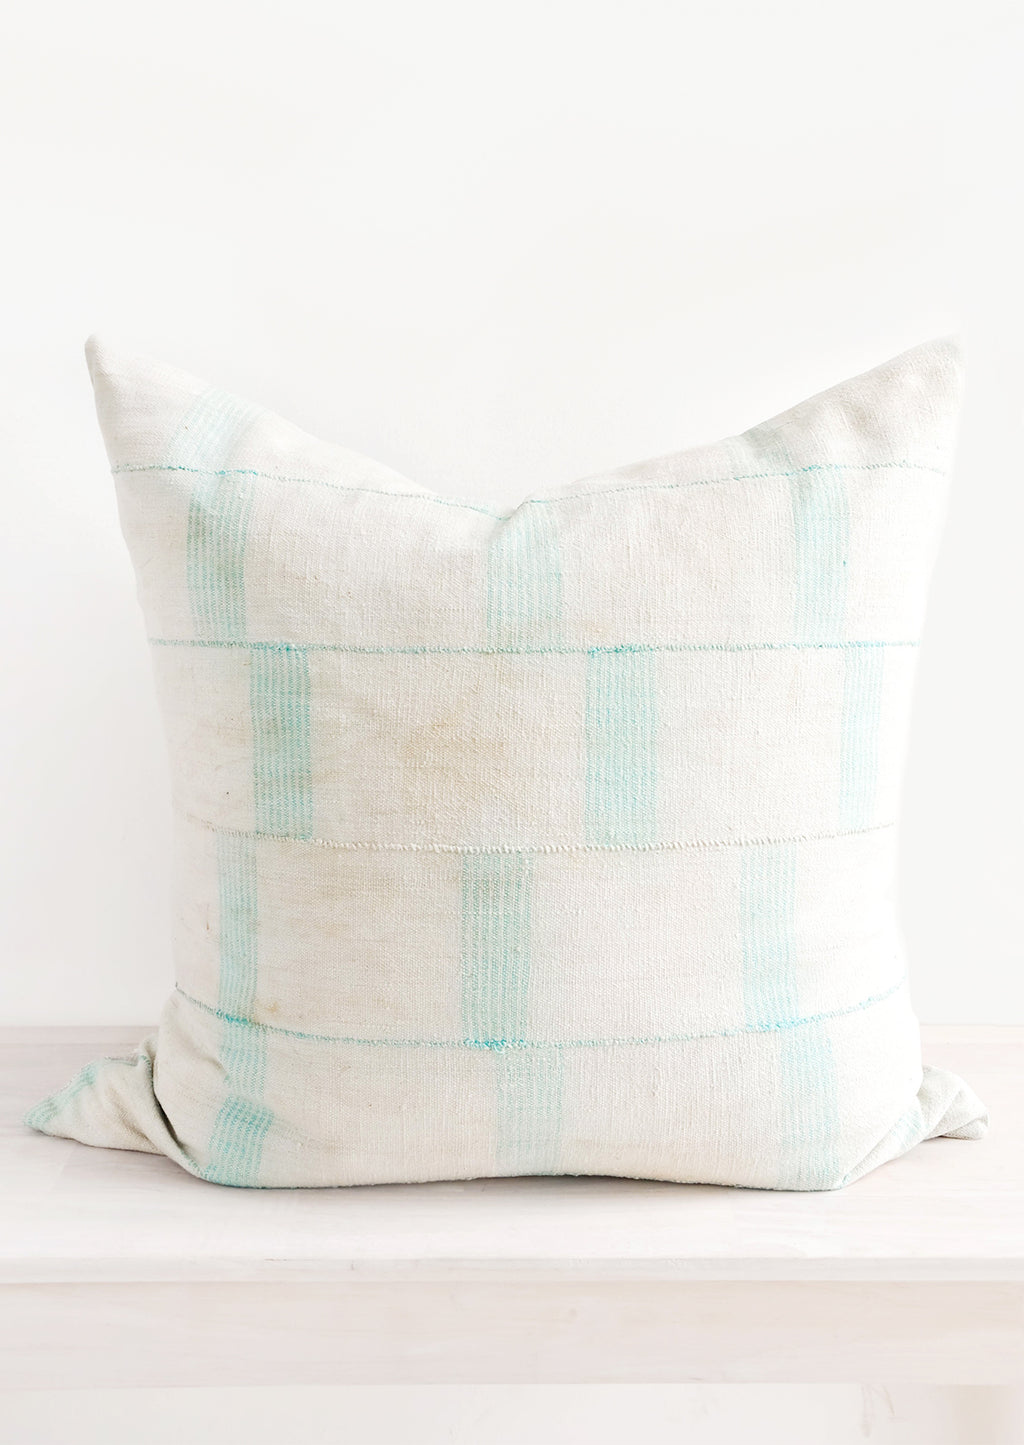 1: Square throw pillow in faded vintage fabric with vertical line print